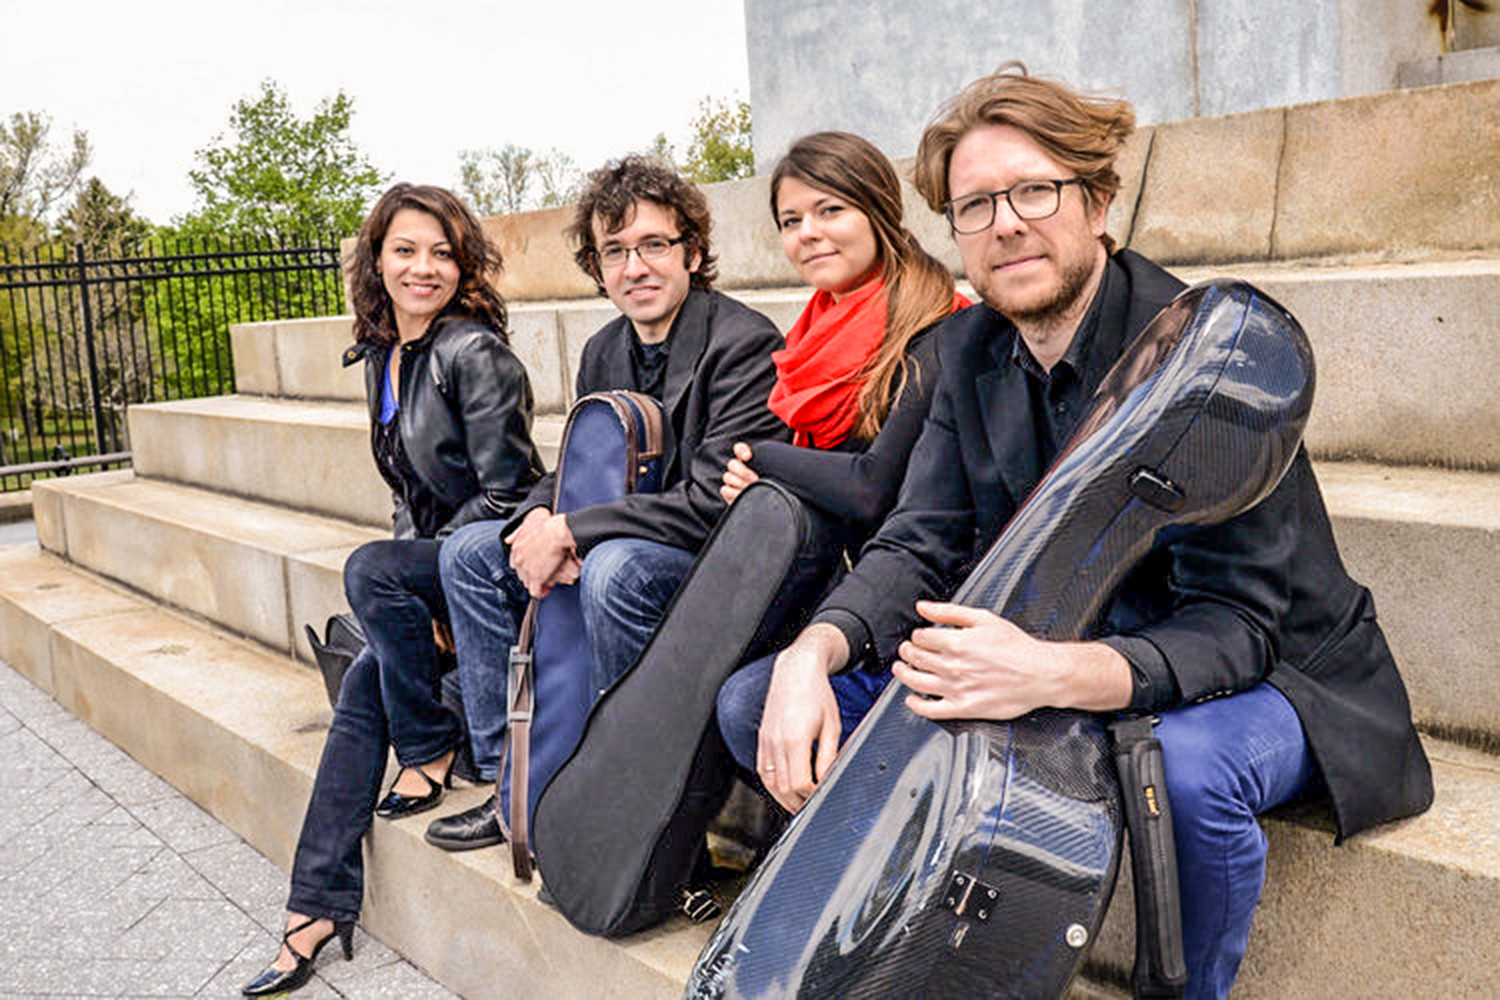 The Haven String Quartet performs in the Arts in the Village Concert Series on Saturday, April 28.